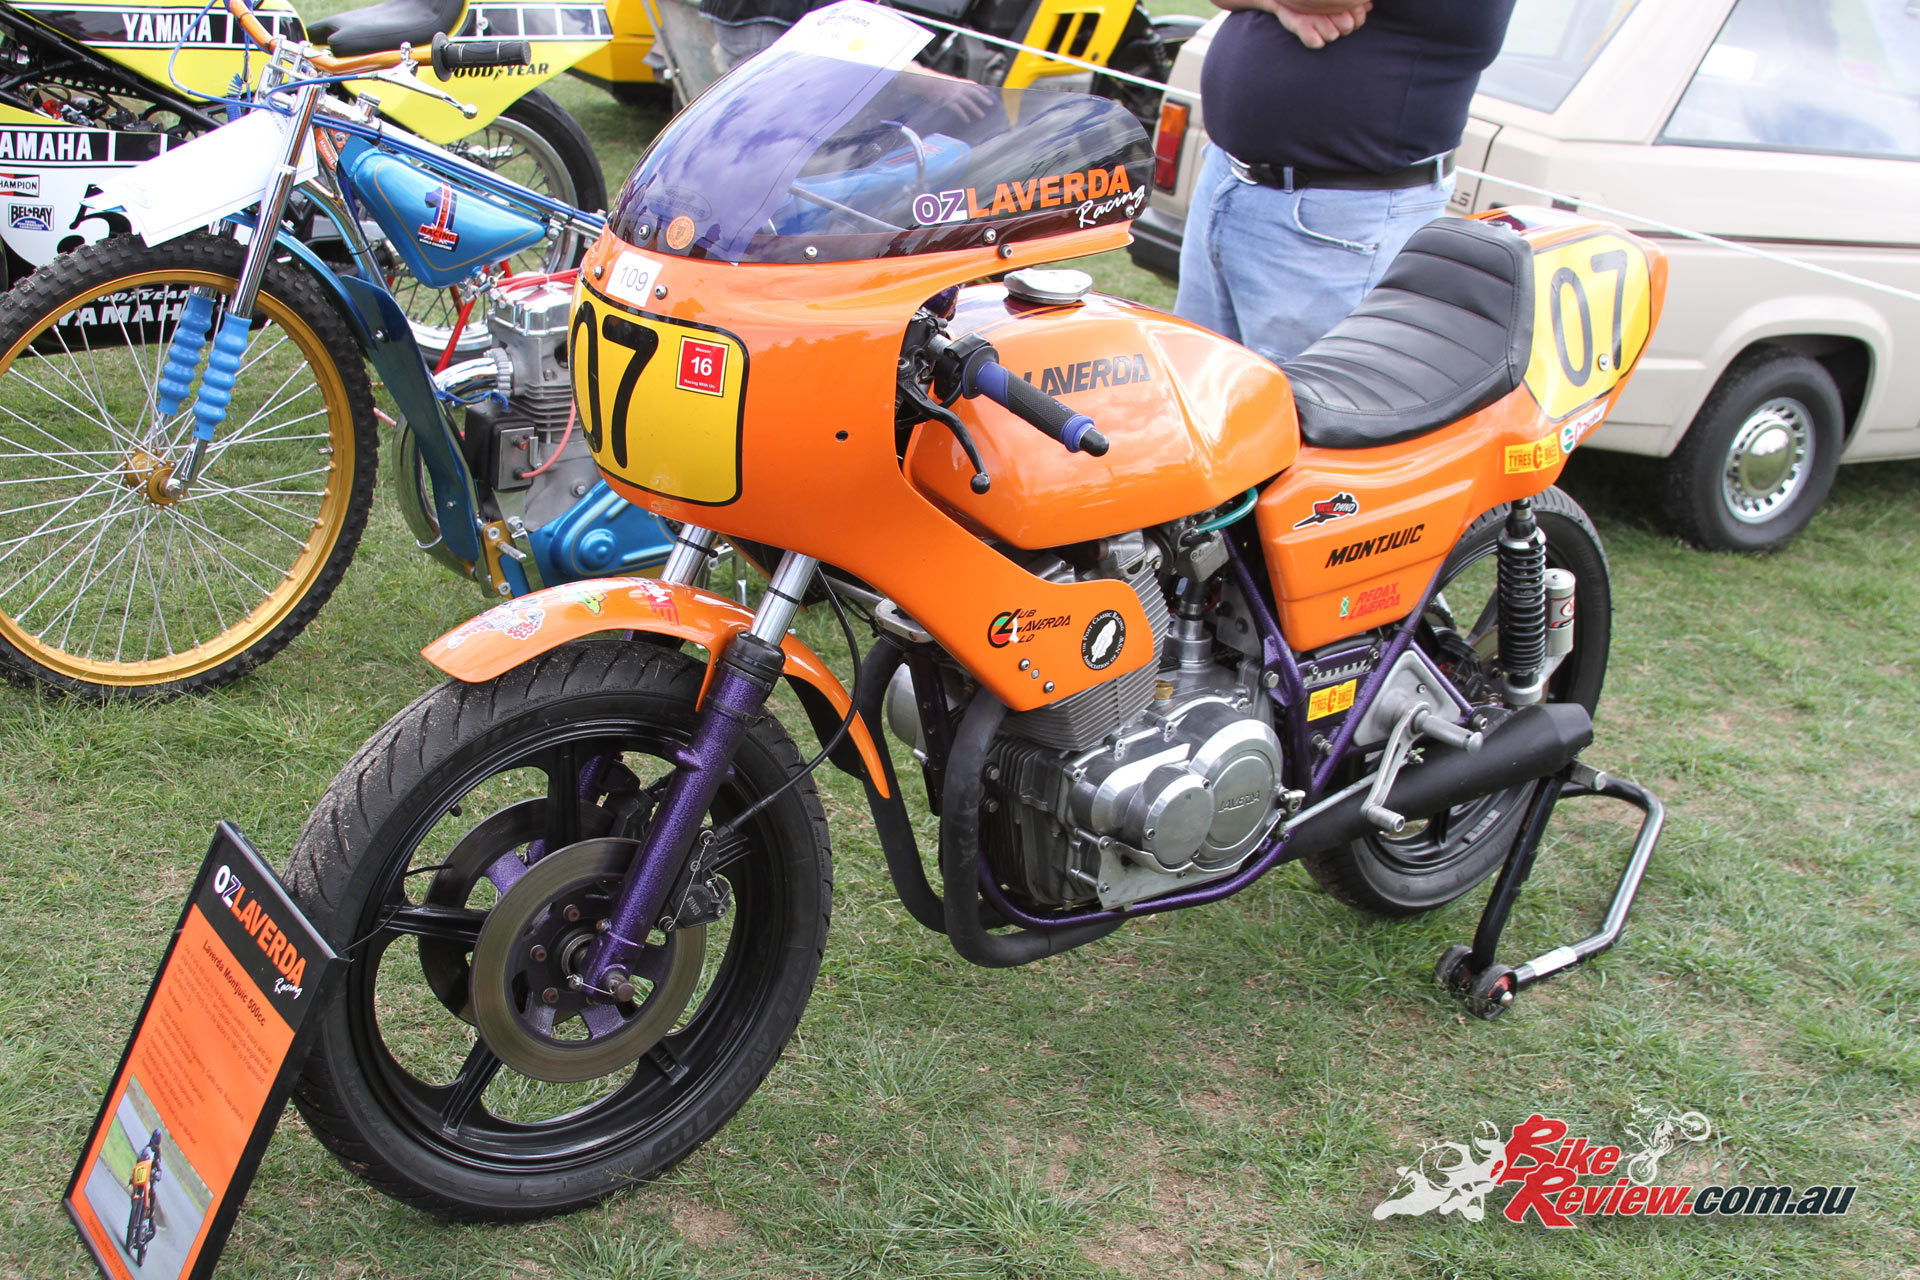 A OzLaverda Racing Montjuic 500 race bike, with engine worked by... you guessed it Redax Laverda!